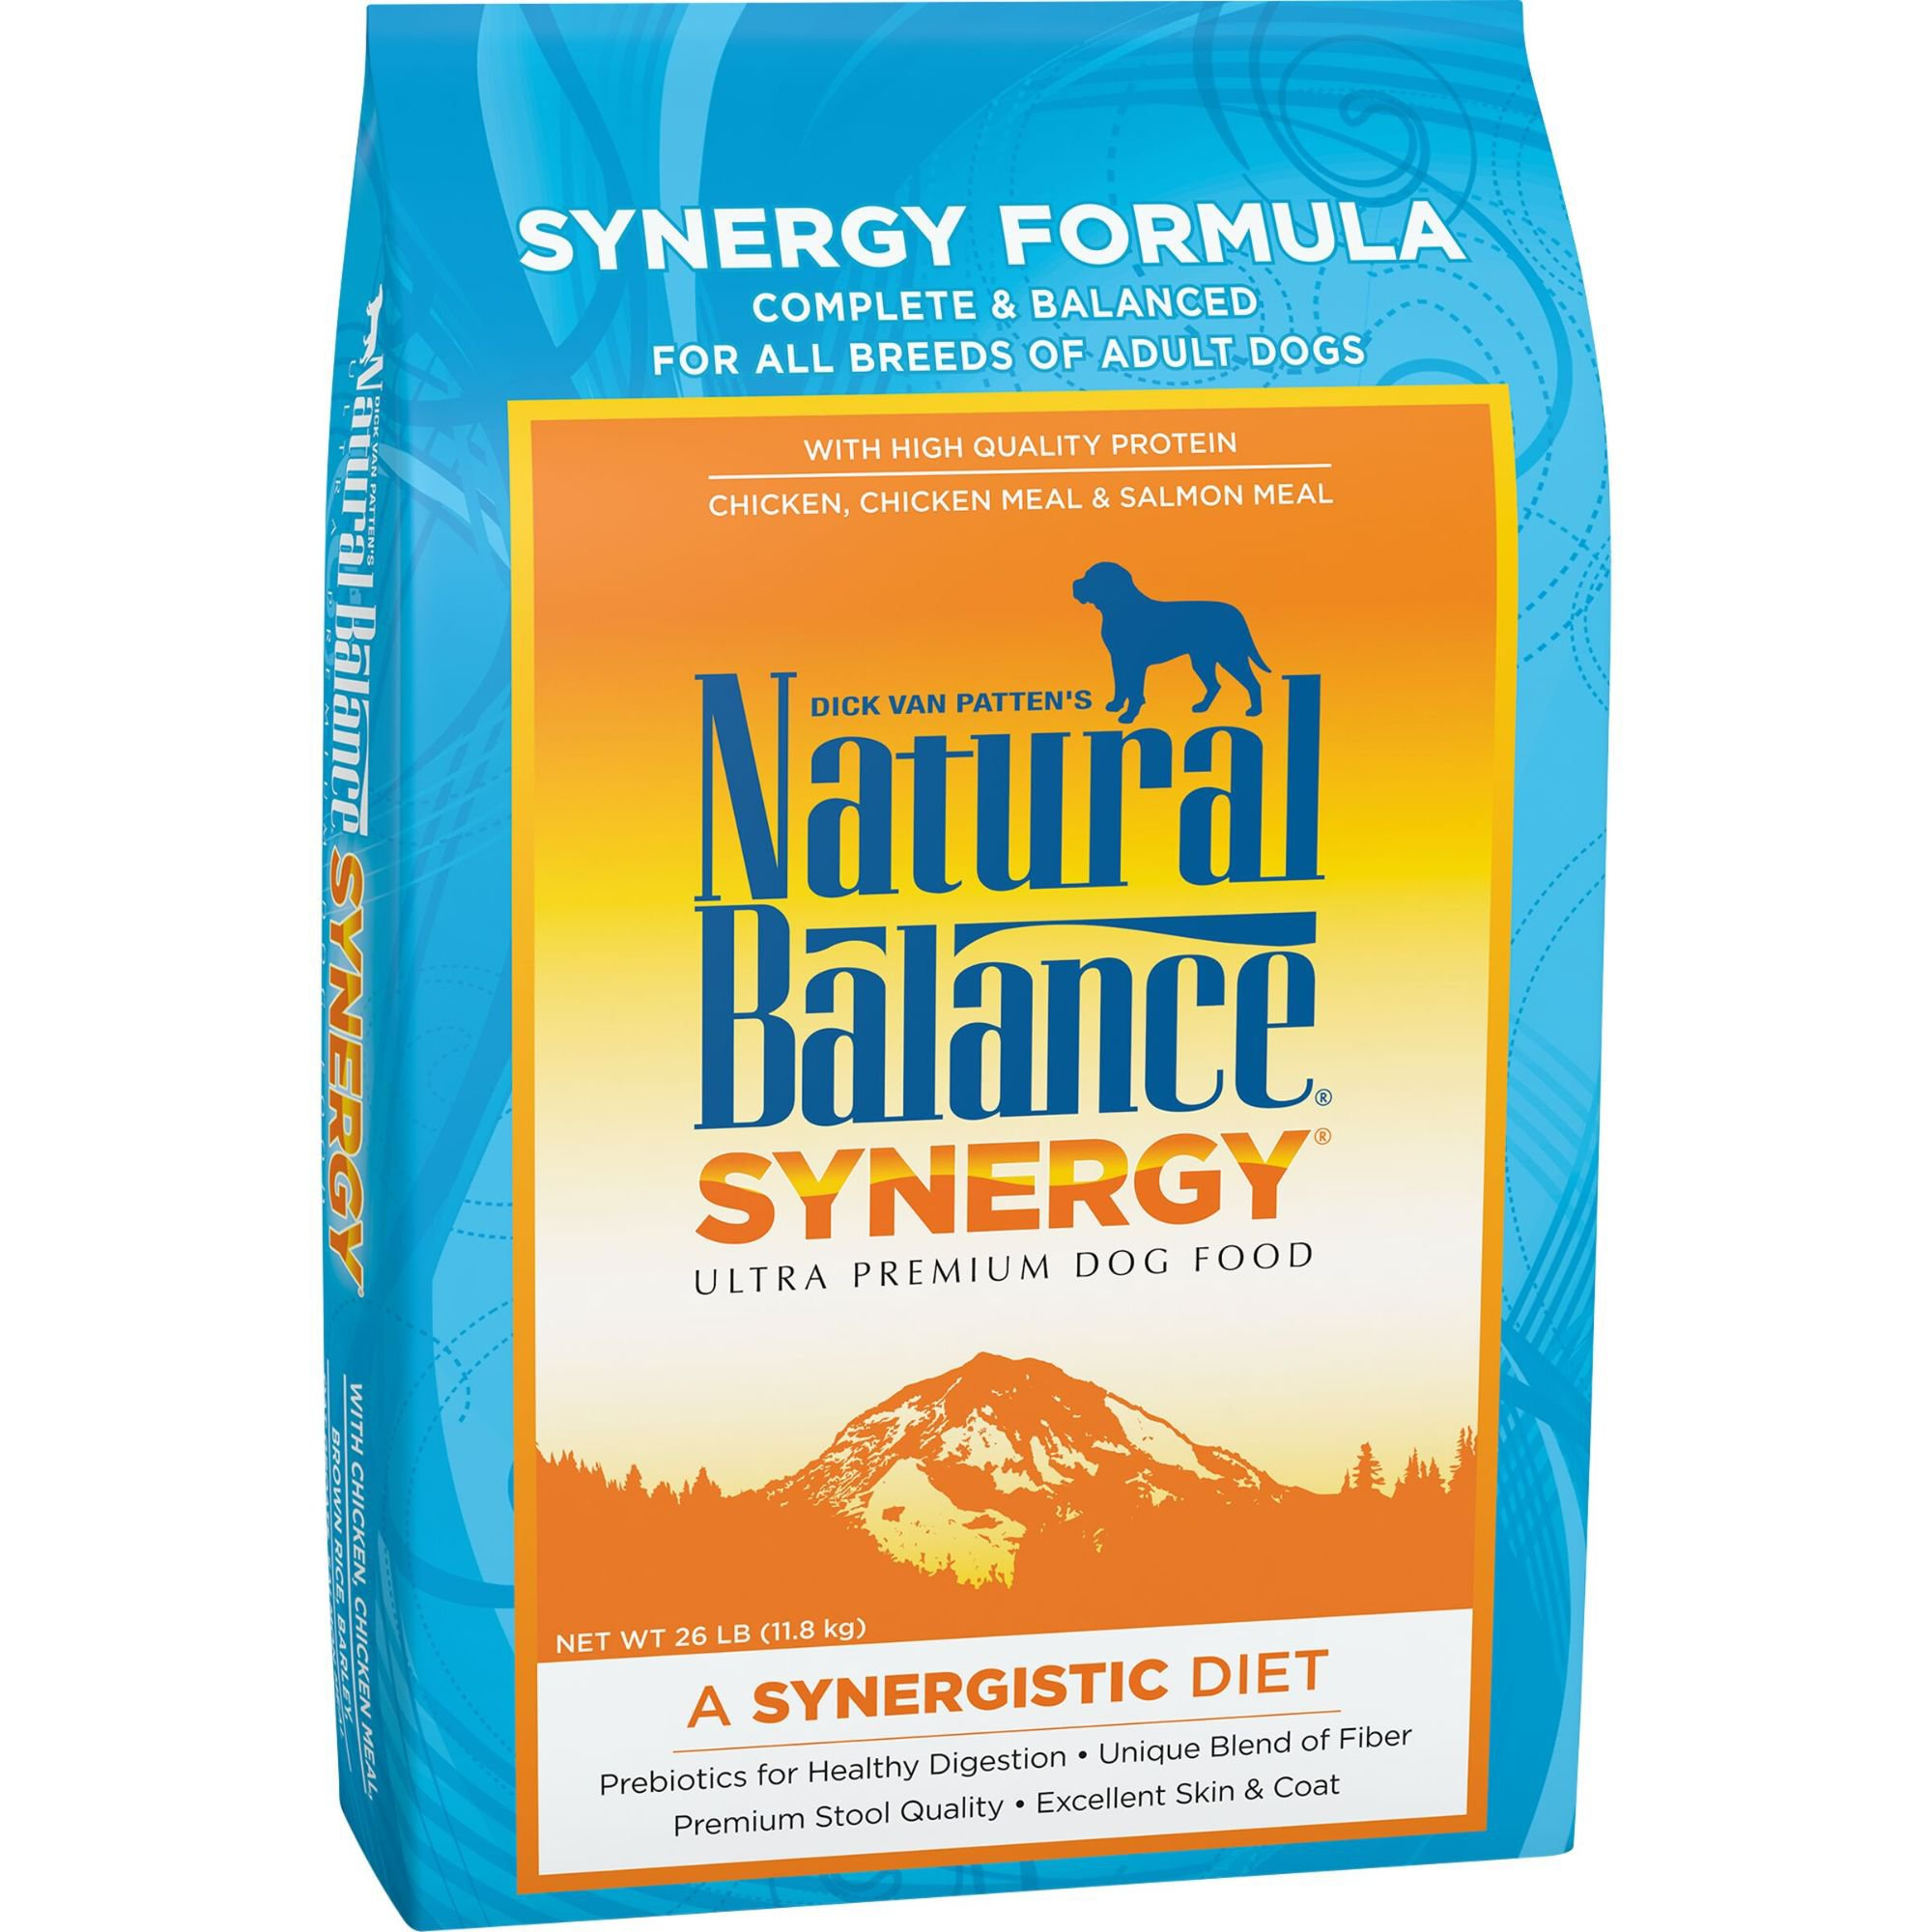 Natural Balance Synergy Ultra Premium Dry Dog Food Petco